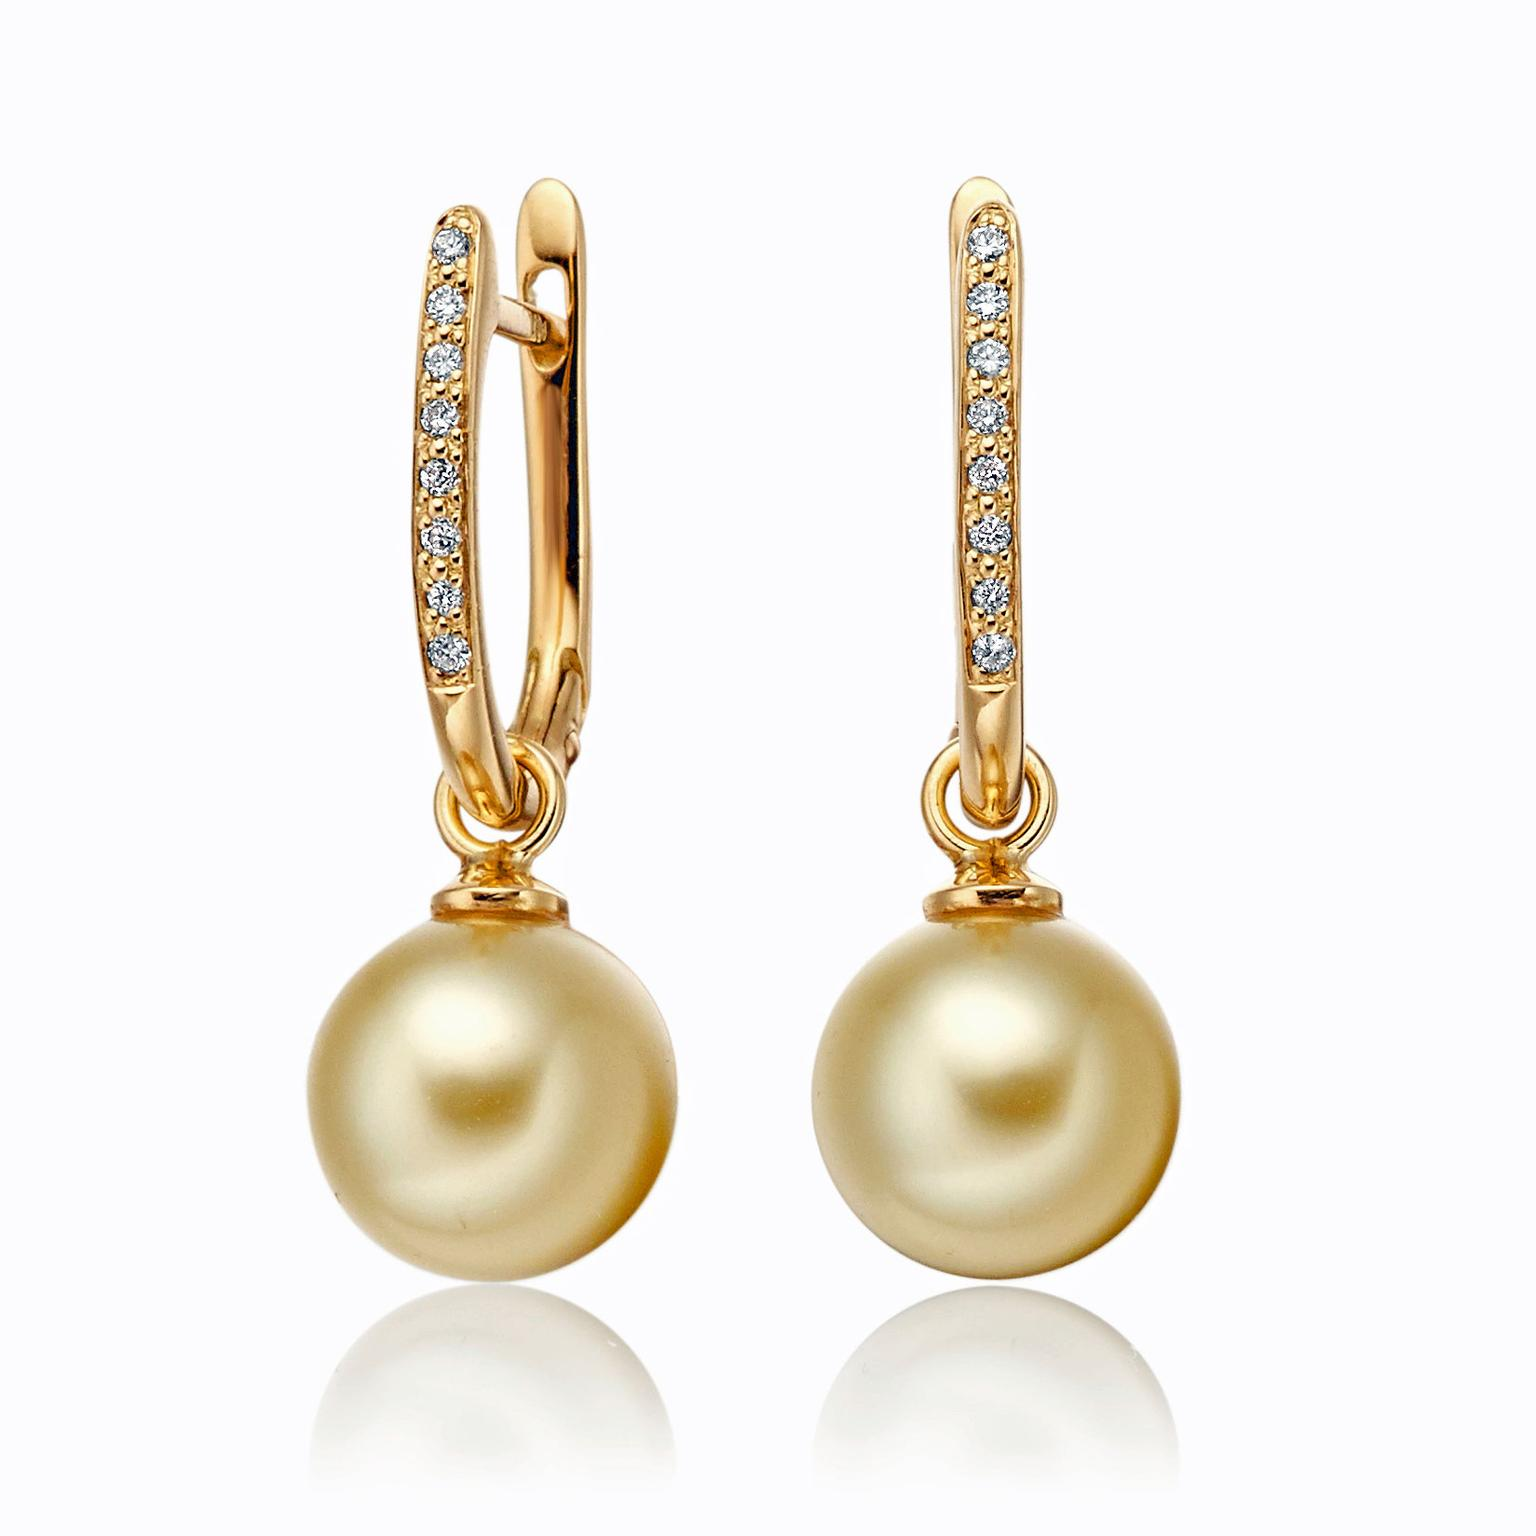 Winterson yellow gold, diamond and pearl earrings